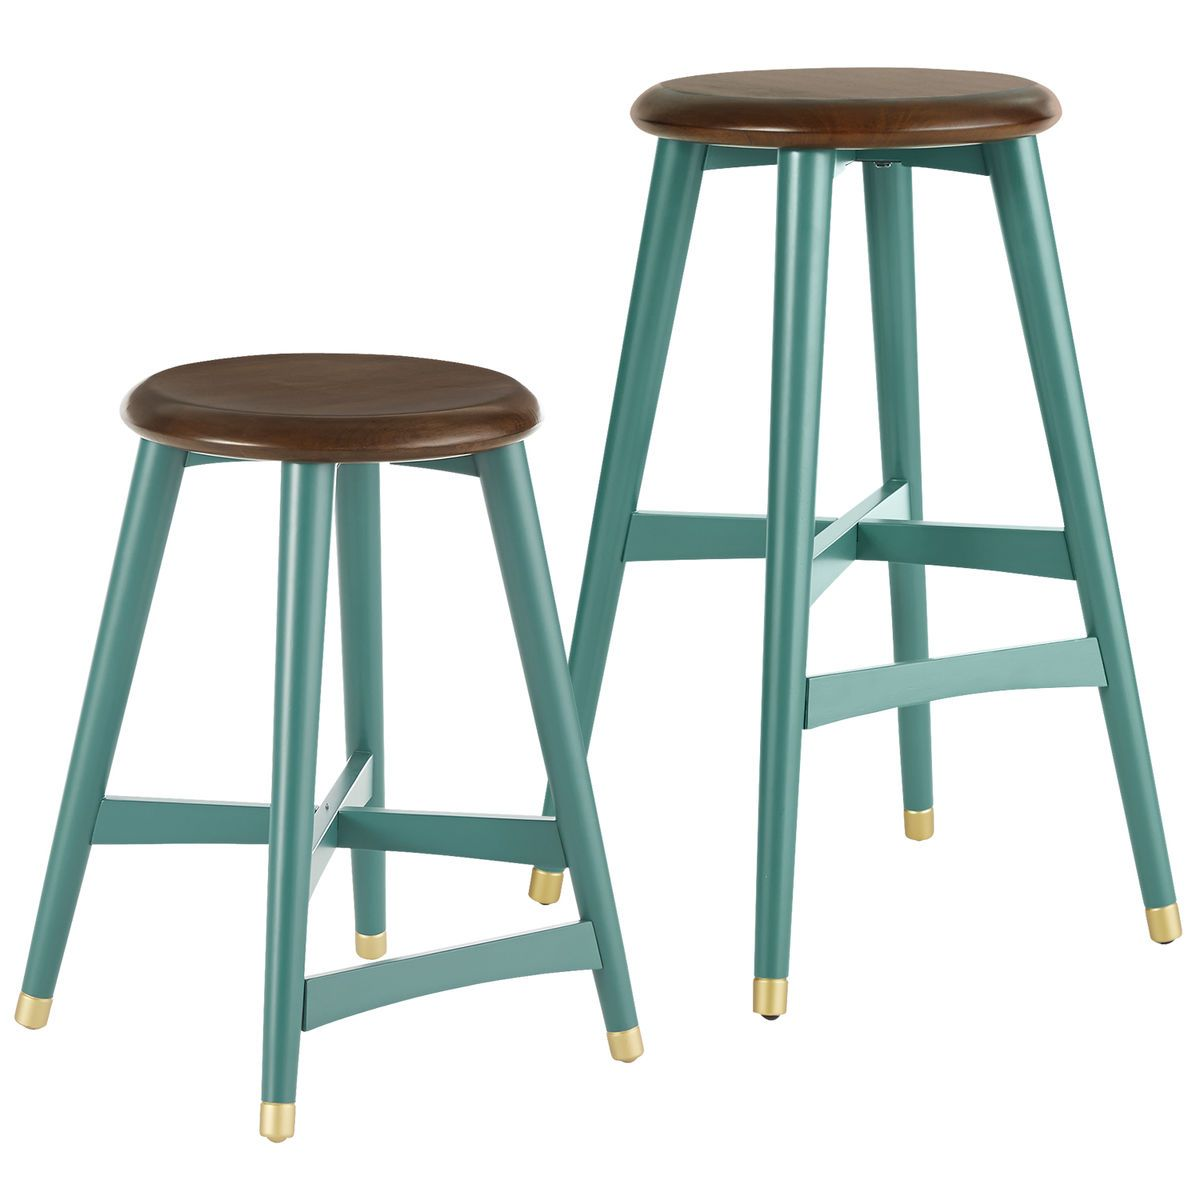 Turquoise Cooper Bar & Counter Stools | Turquoiseaholic | Pinterest ...